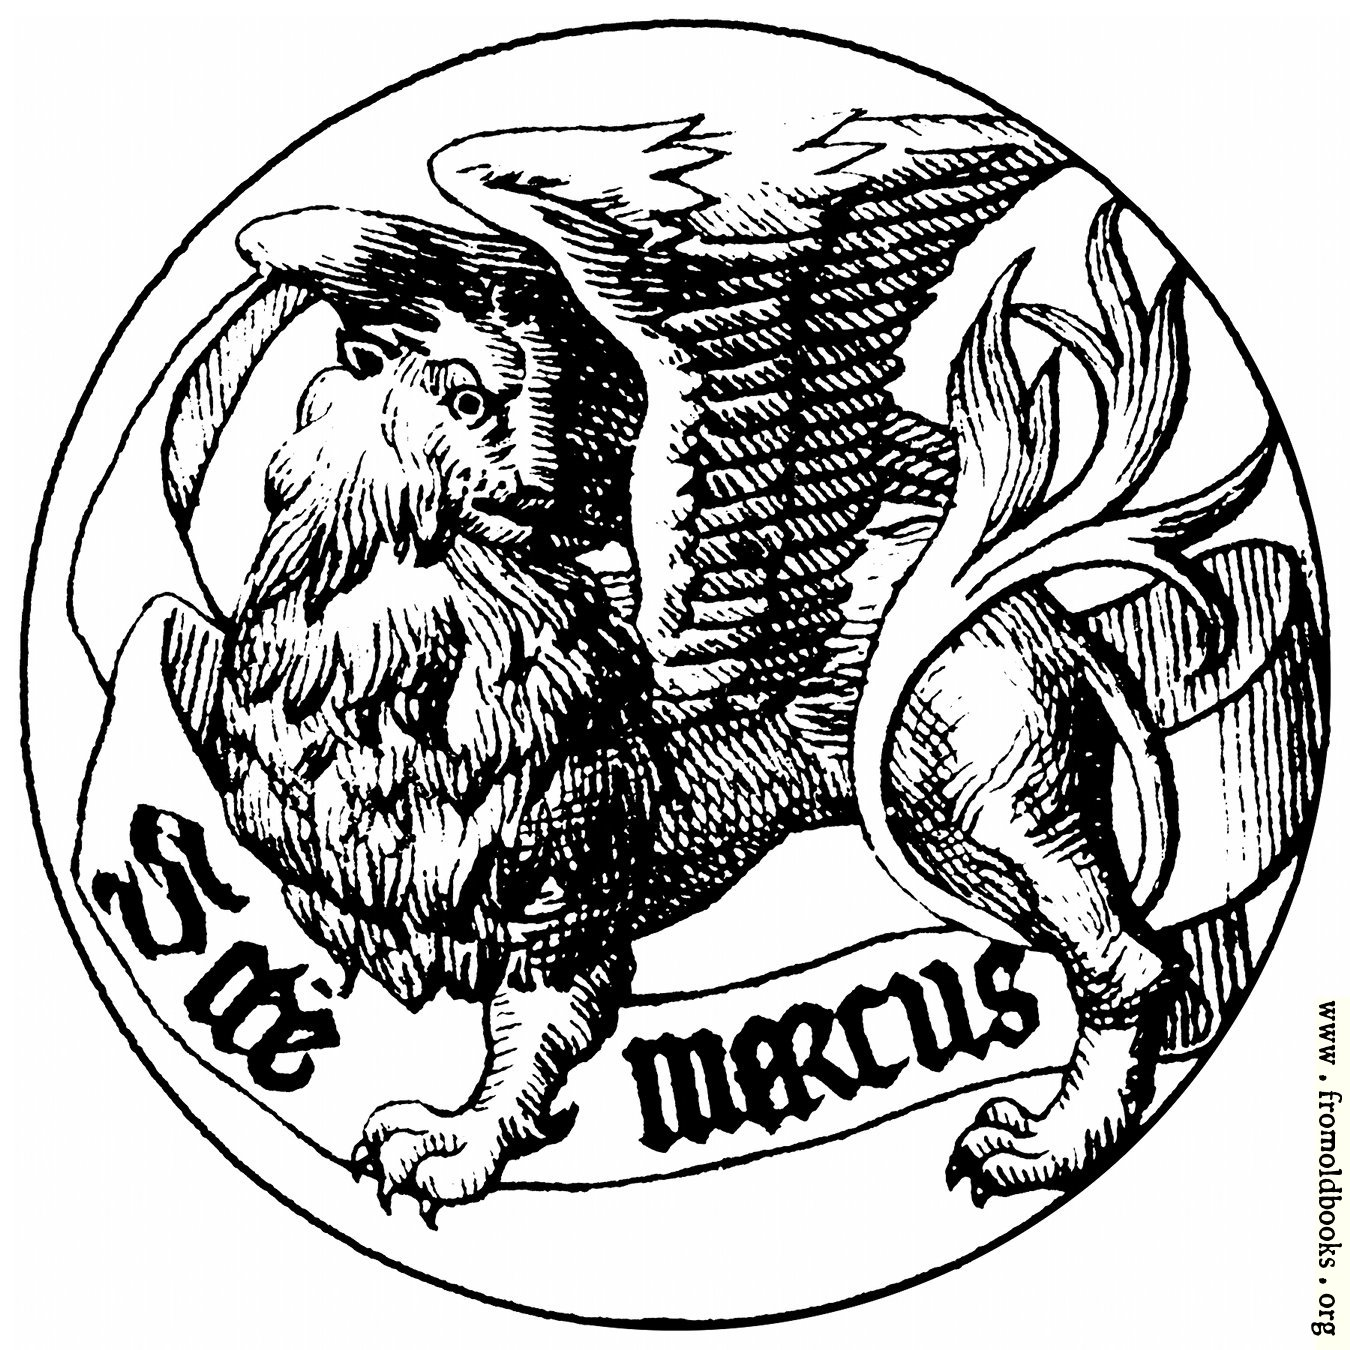 [Picture: Badge of Saint Mark the Evangelist]